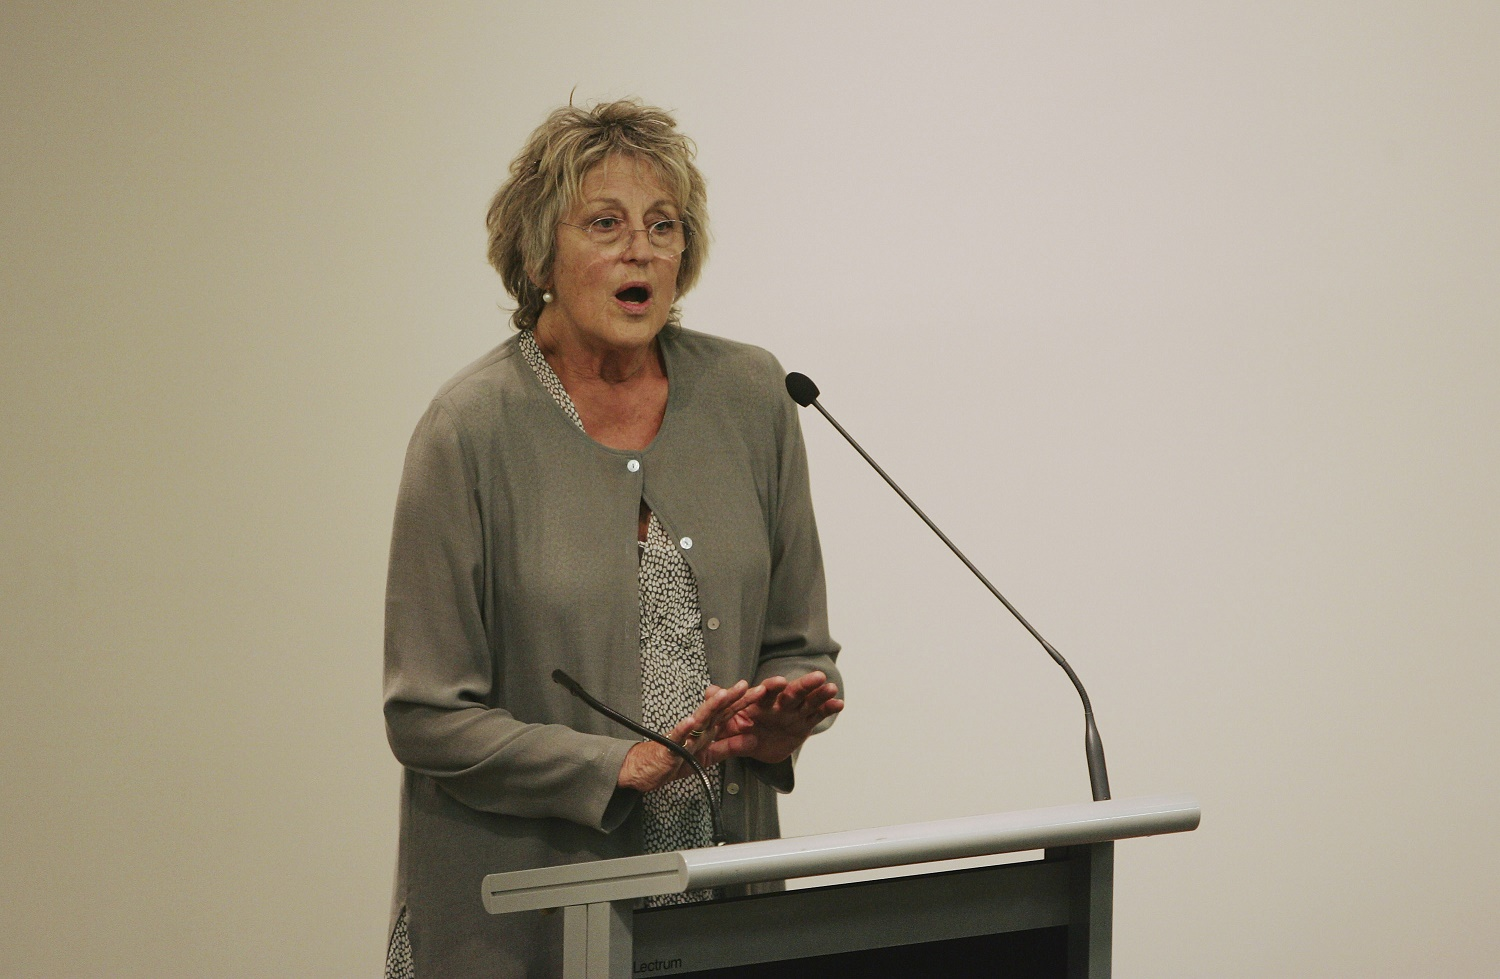 germaine greer Enjoy the best germaine greer quotes at brainyquote quotations by germaine greer, australian activist, born january 29, 1939 share with your friends.